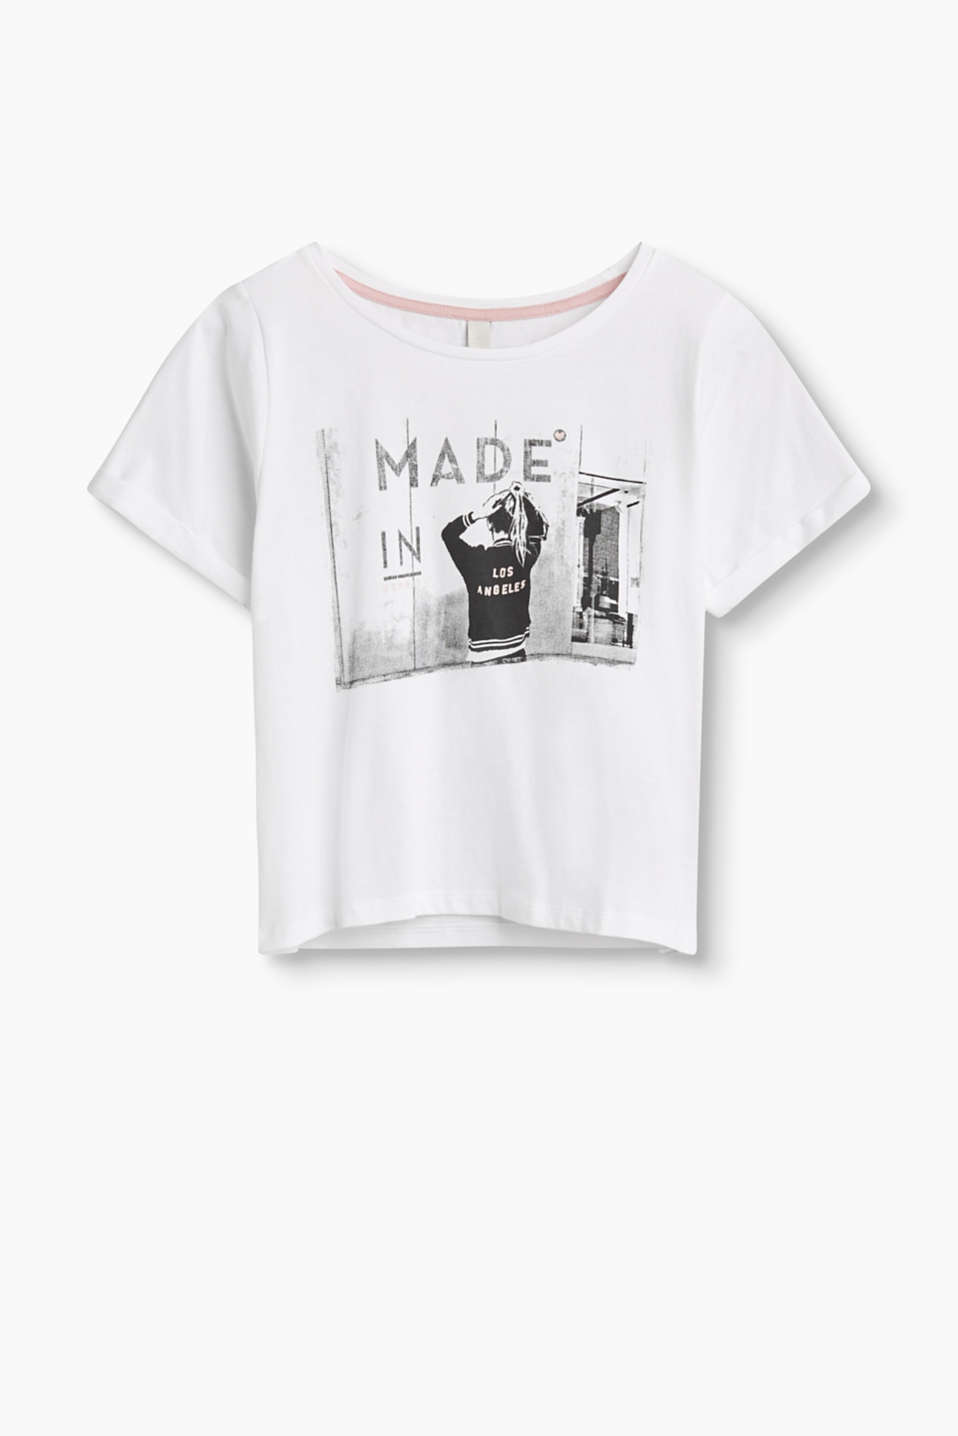 Made in Los Angeles - une inscription, un imprimé sur ce t-shirt en jersey de pur coton.